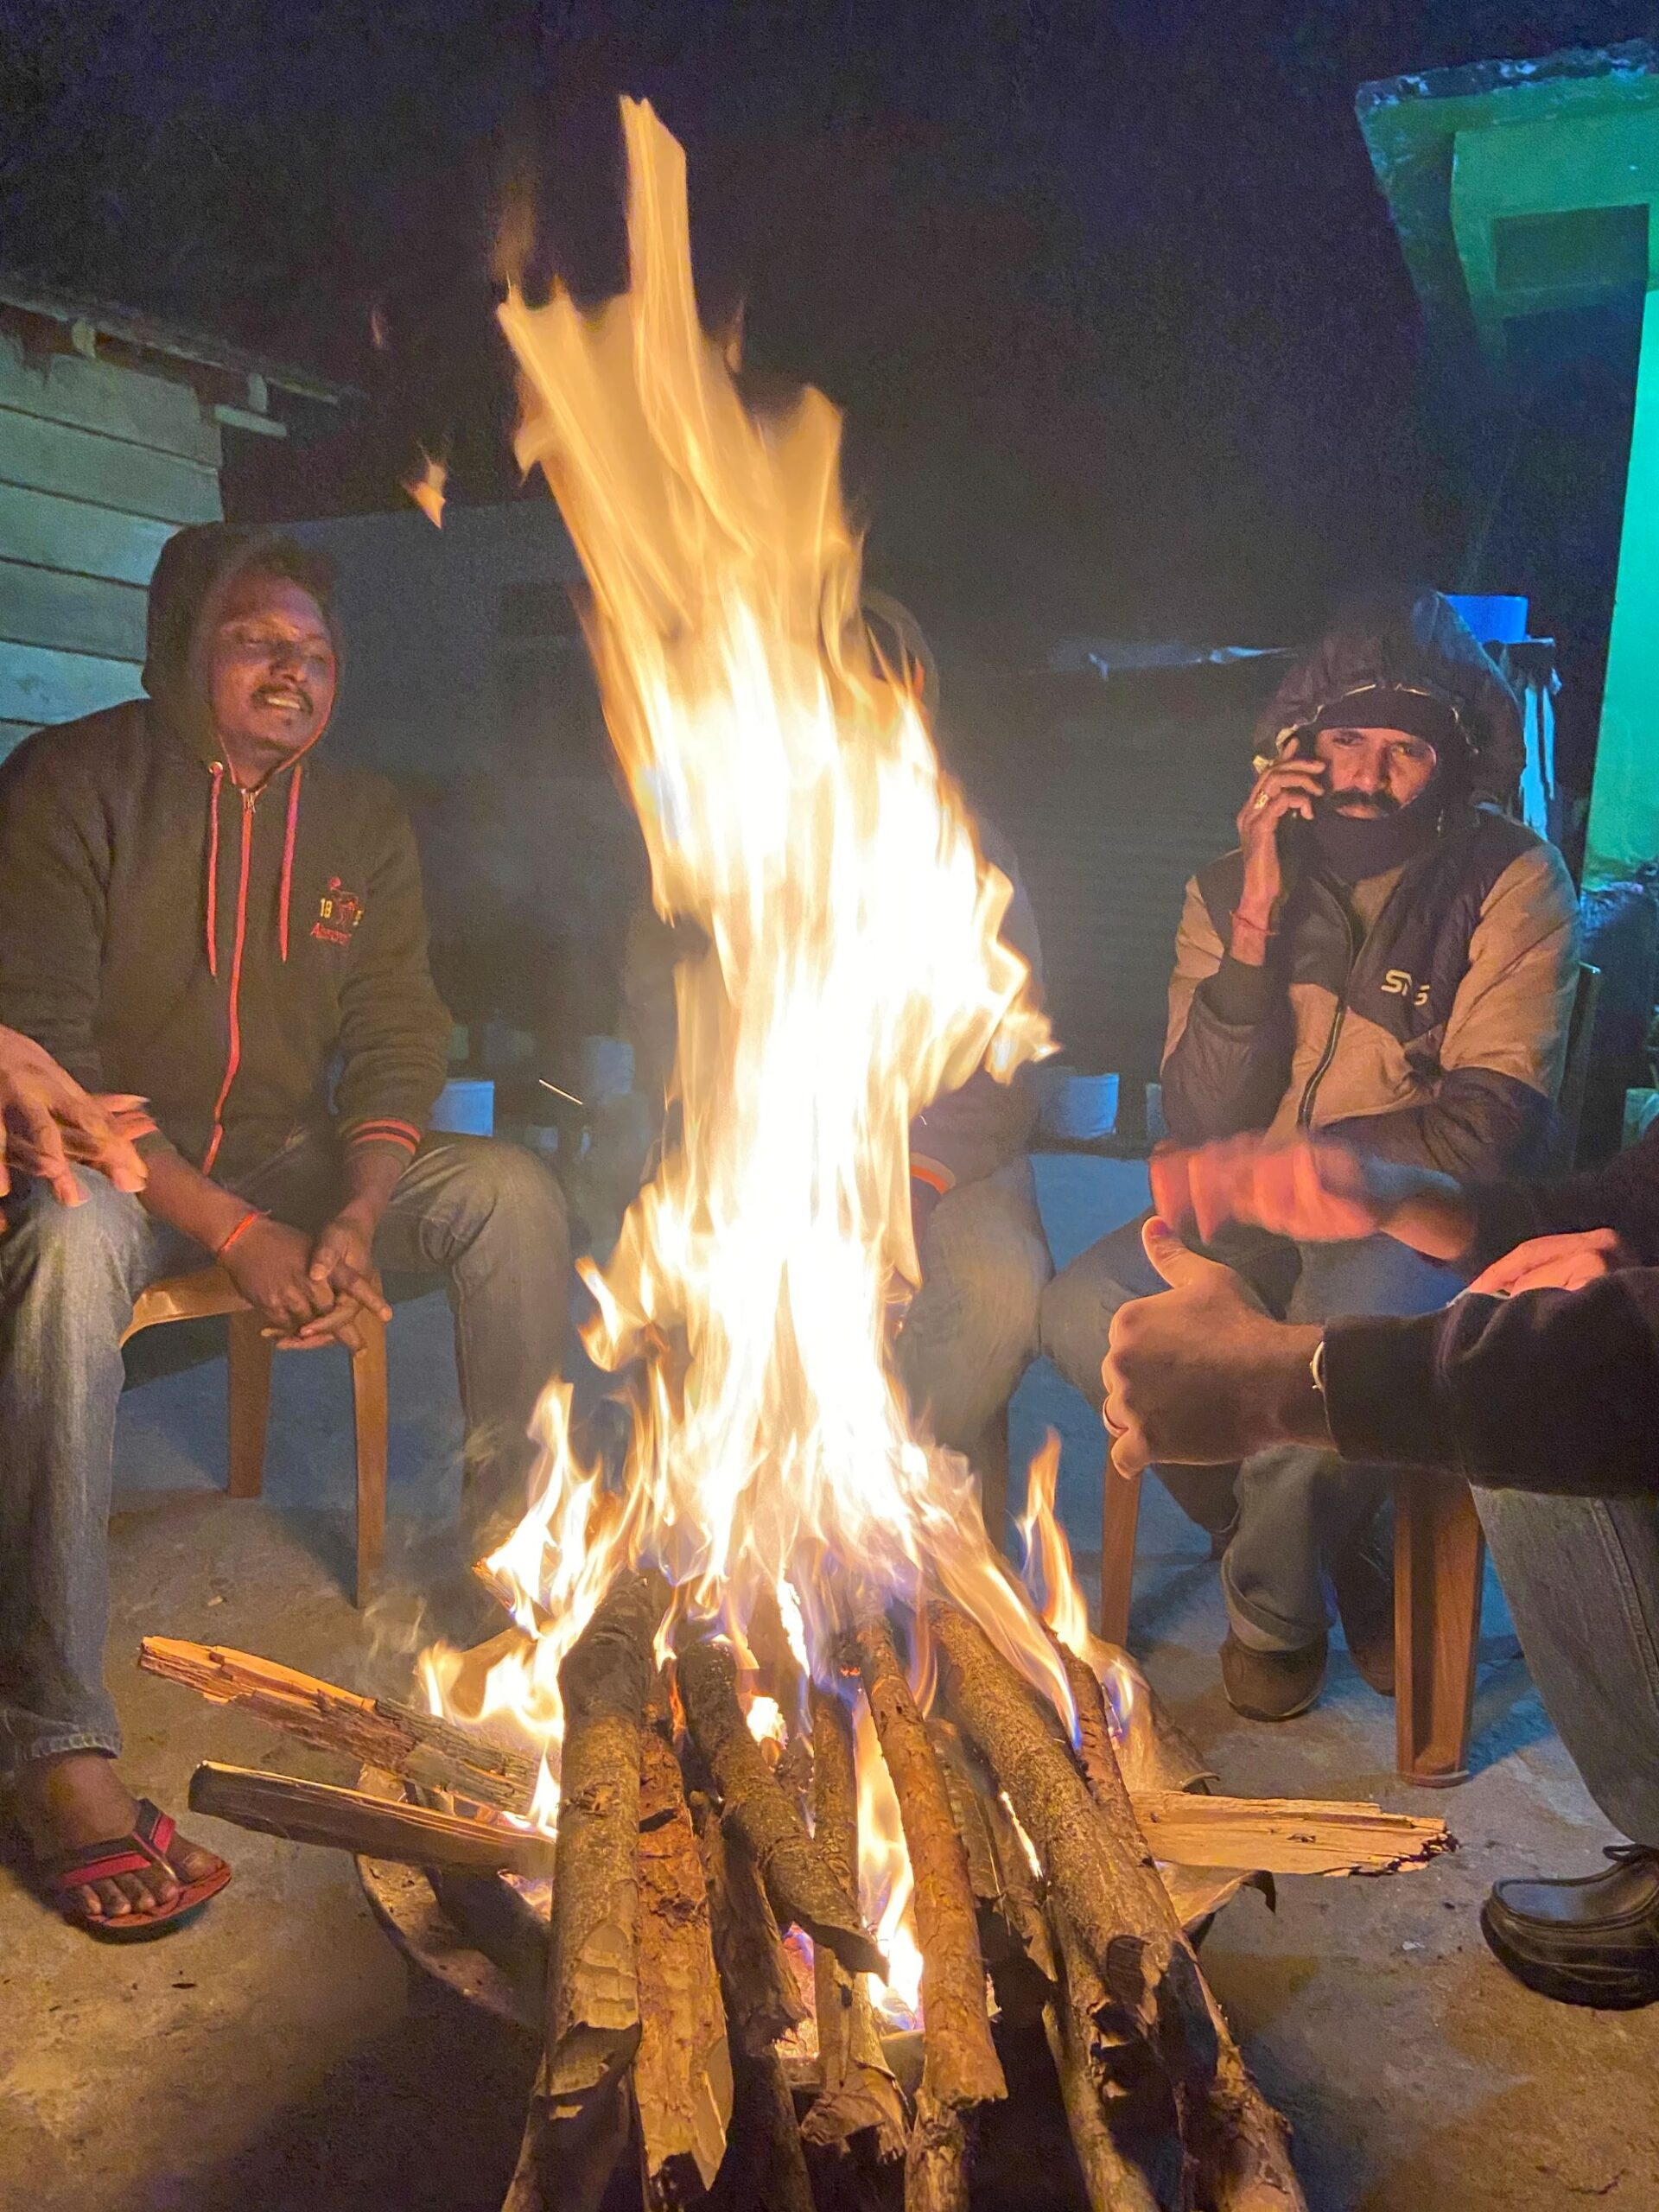 The members of the expedition warm up around a campfire